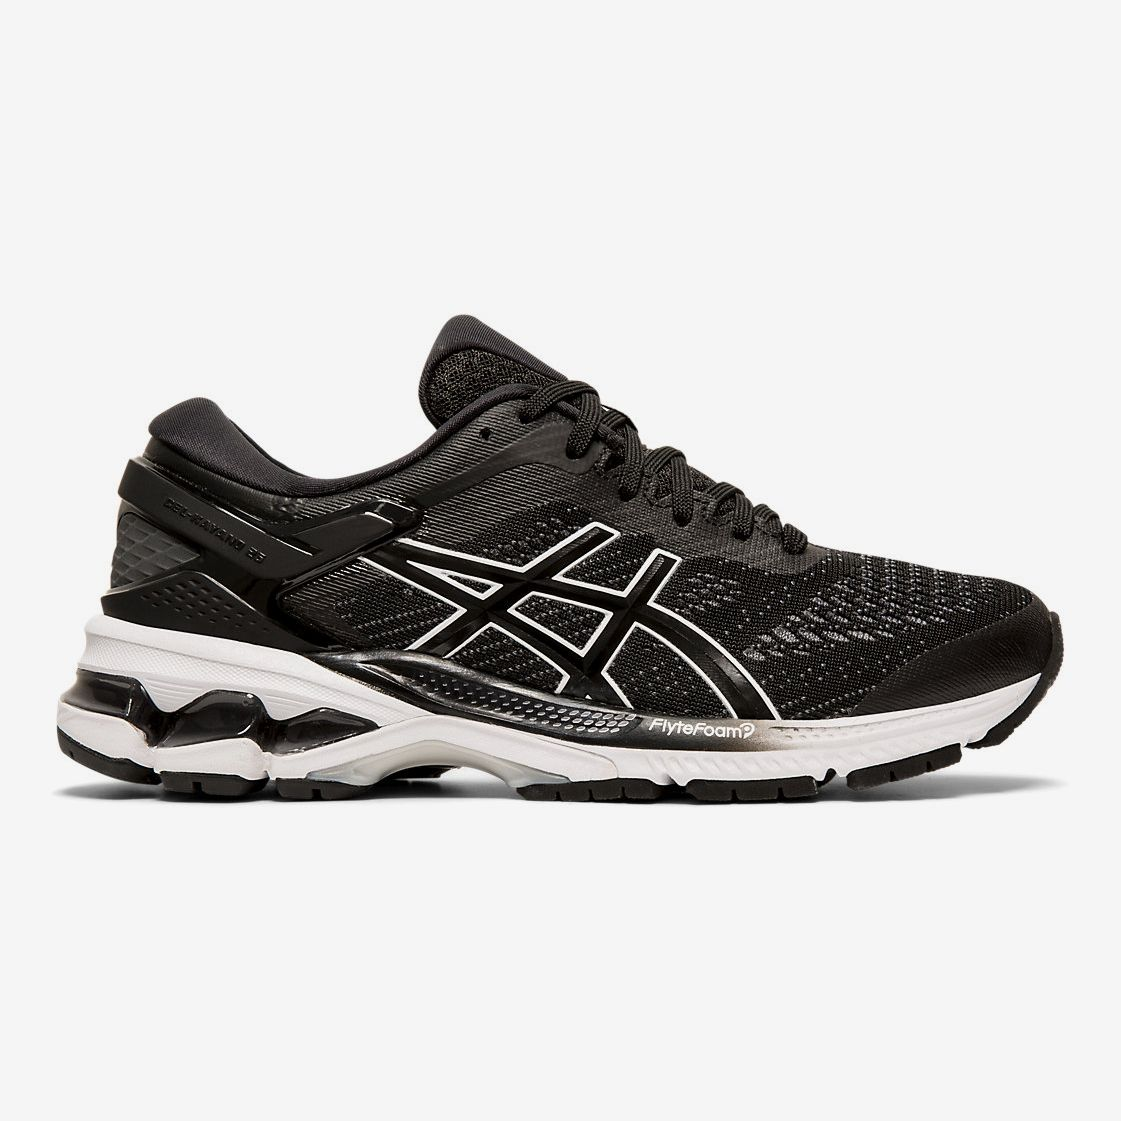 24 Best Workout Shoes for Women 2020